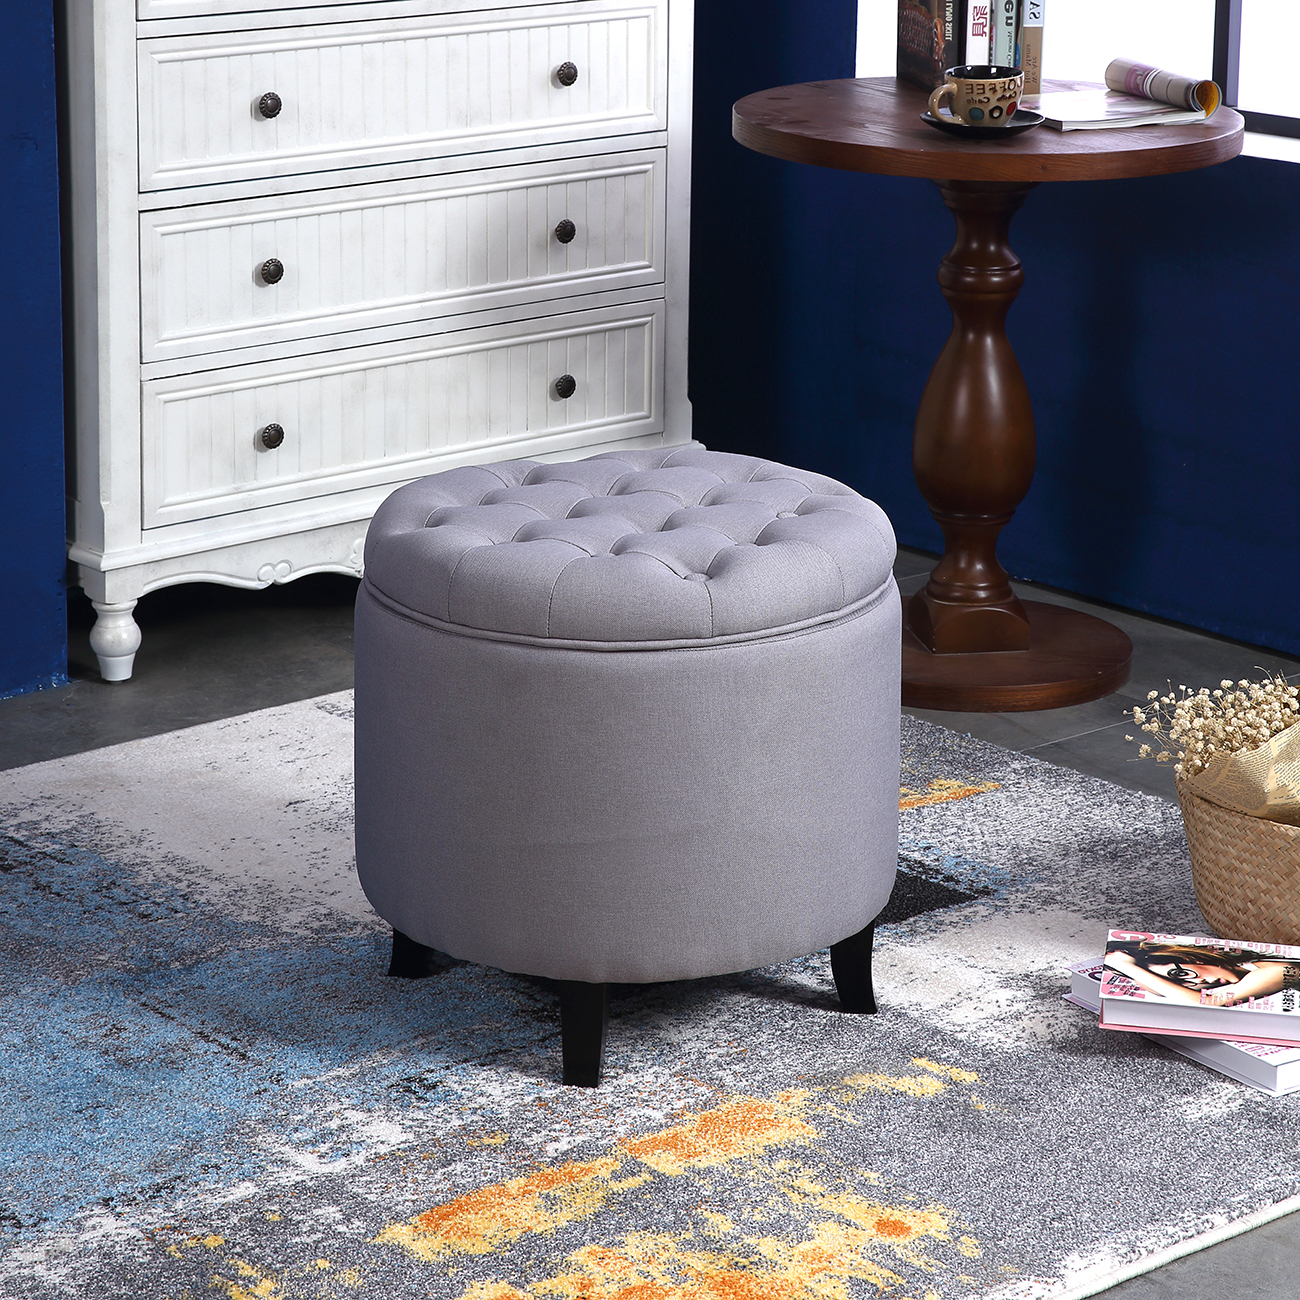 Elegant Fabric Tufted Button Ottoman Round Footstool Coffee Table Regarding Well Known Round Button Tufted Coffee Tables (Gallery 13 of 20)